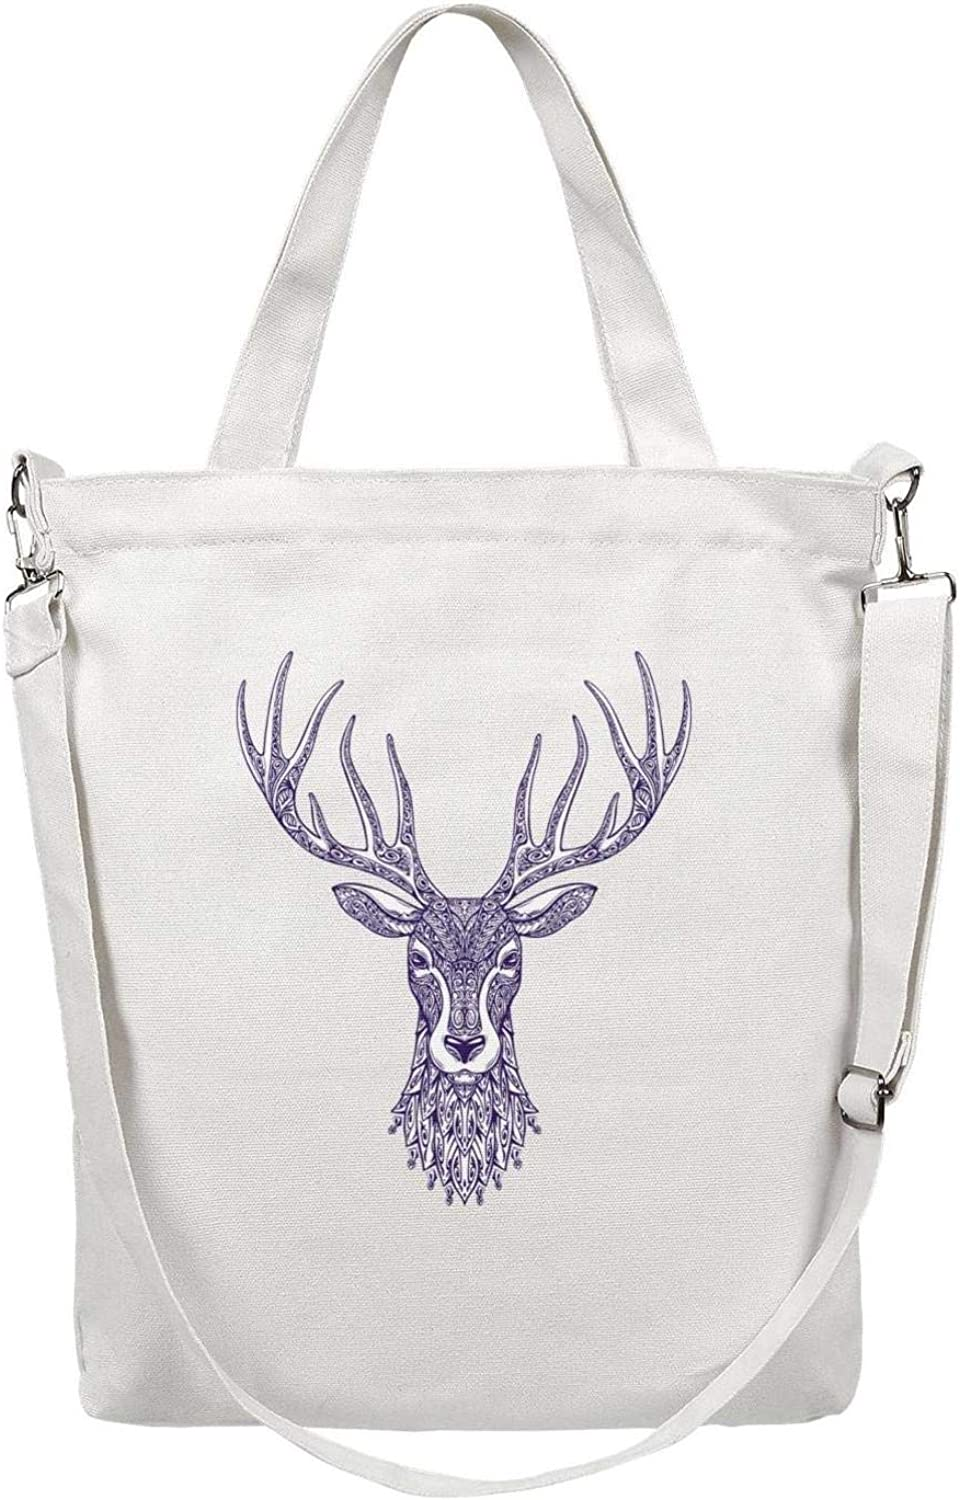 or Travel School Deer on Blue Watercolor Background Tote bag  Gifts for Her  Carries up to 44 lbs  Great for Work